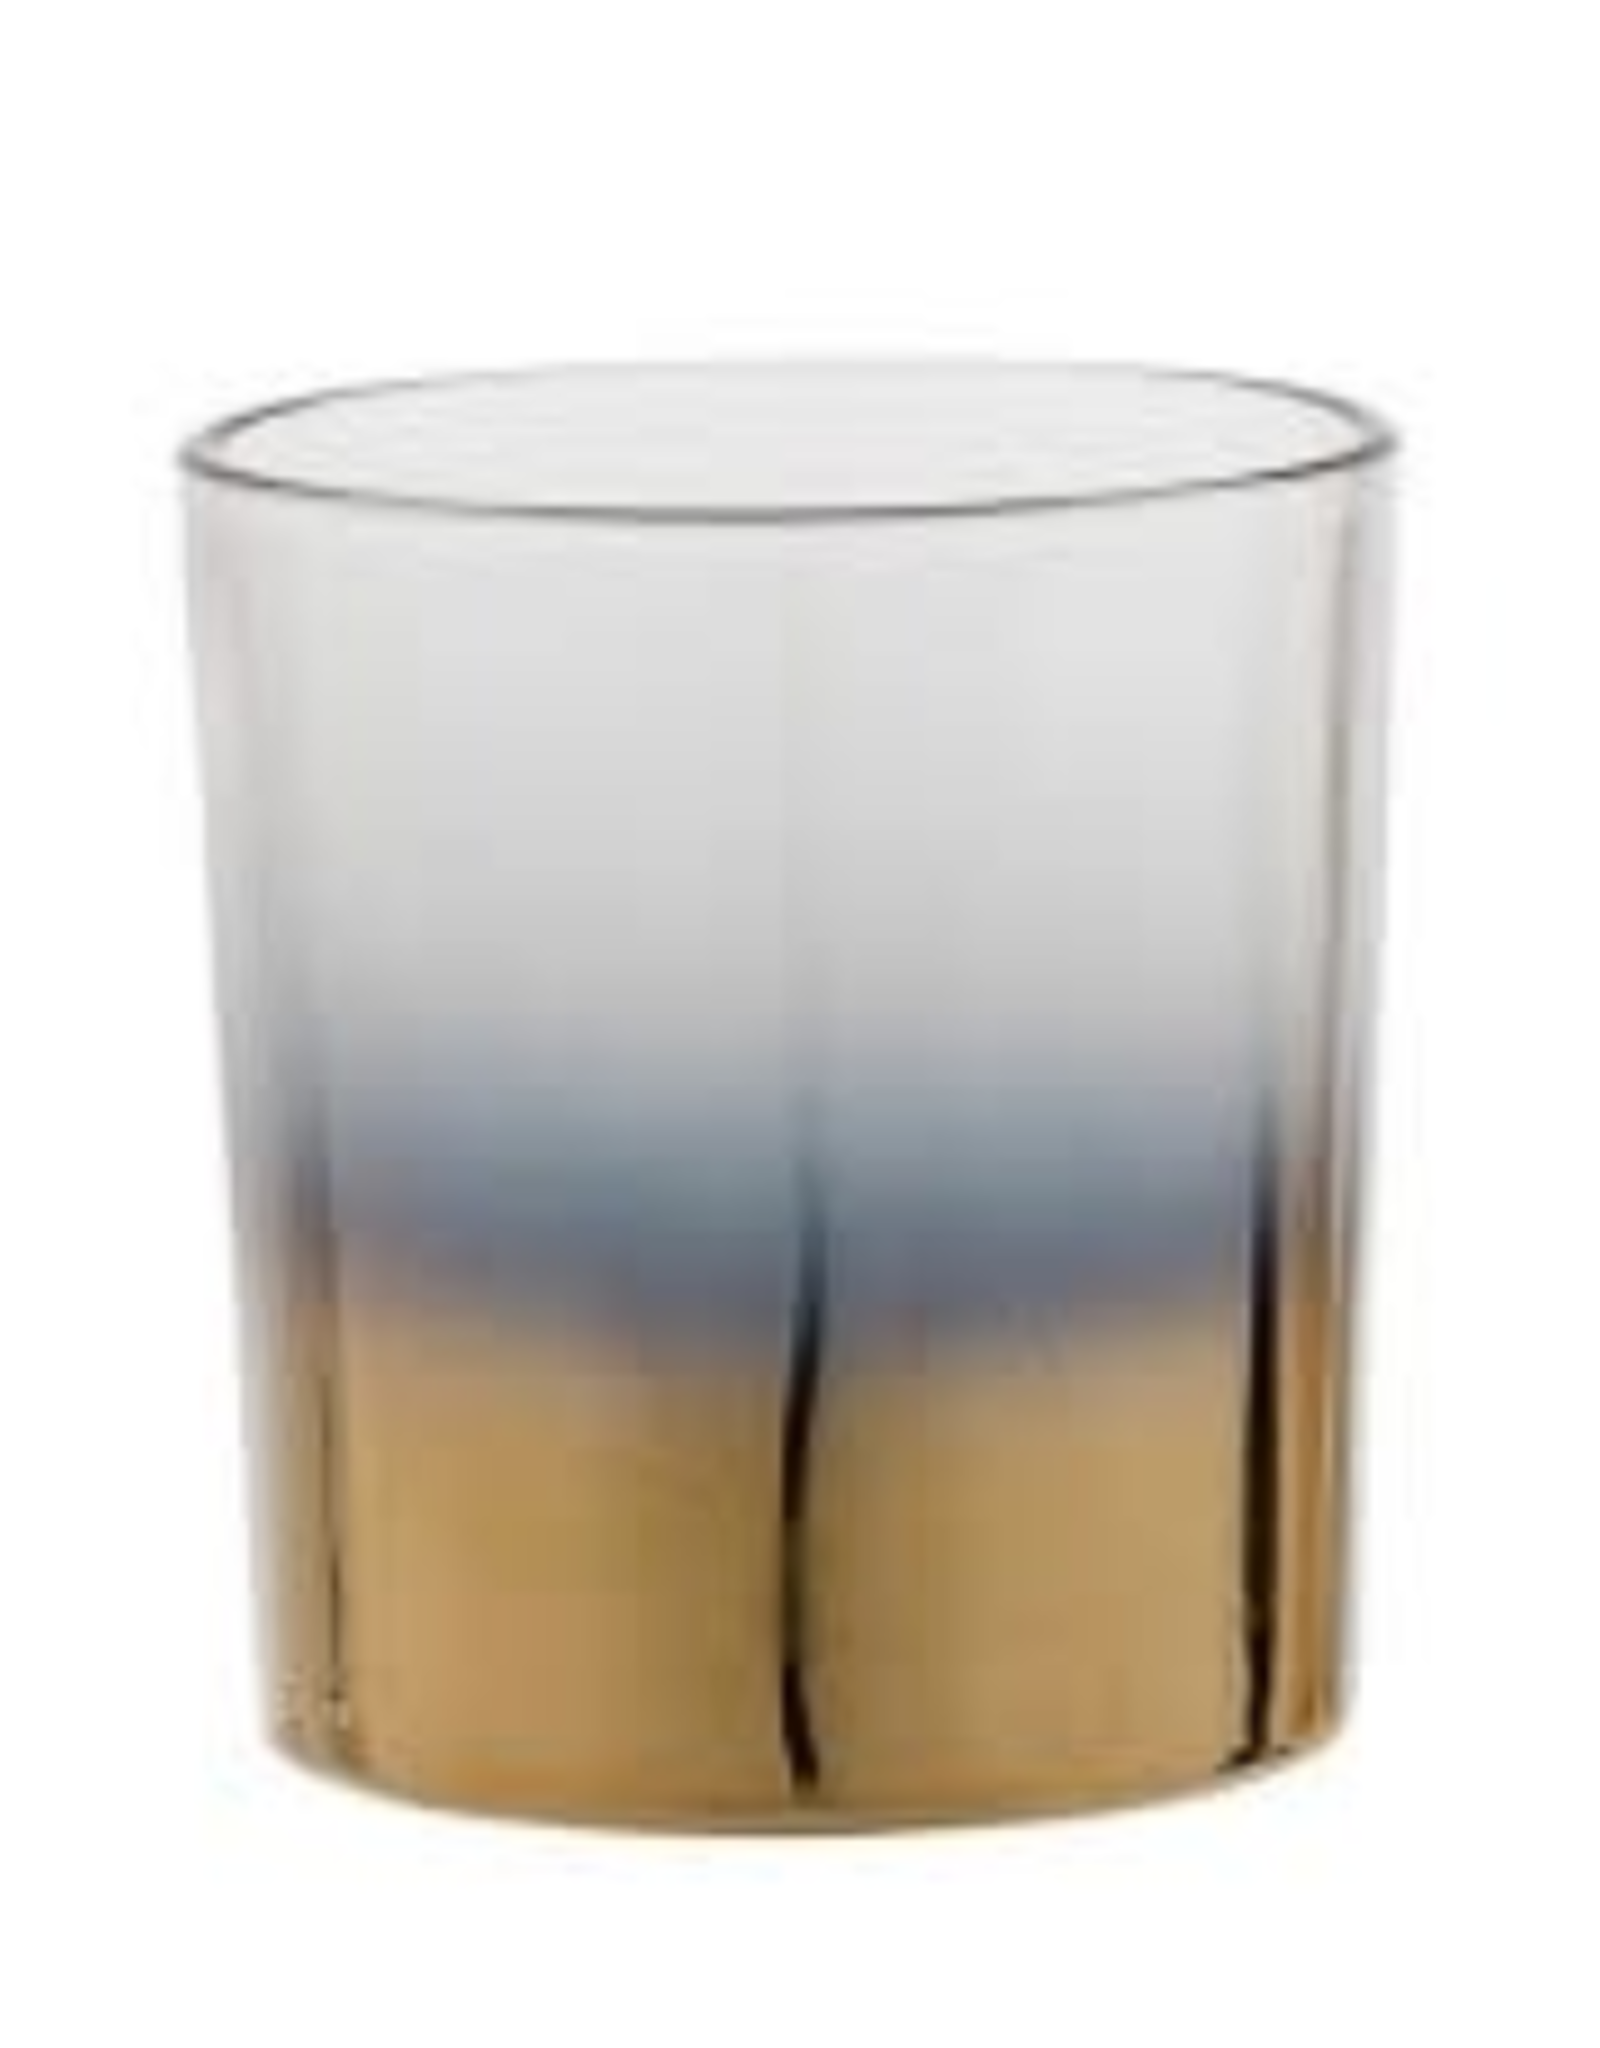 CANDLE HOLDER GLASS CLEAR AND GOLD